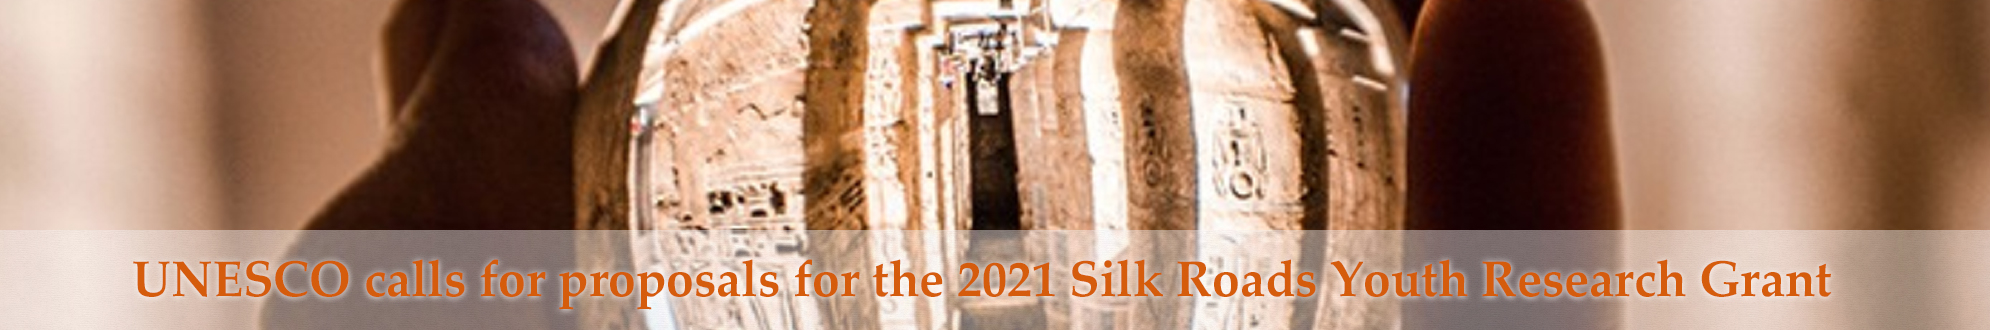 UNESCO calls for proposals for the 2021 Silk Roads Youth Research Grant http://www.cipsh.net/web/news-317.htm